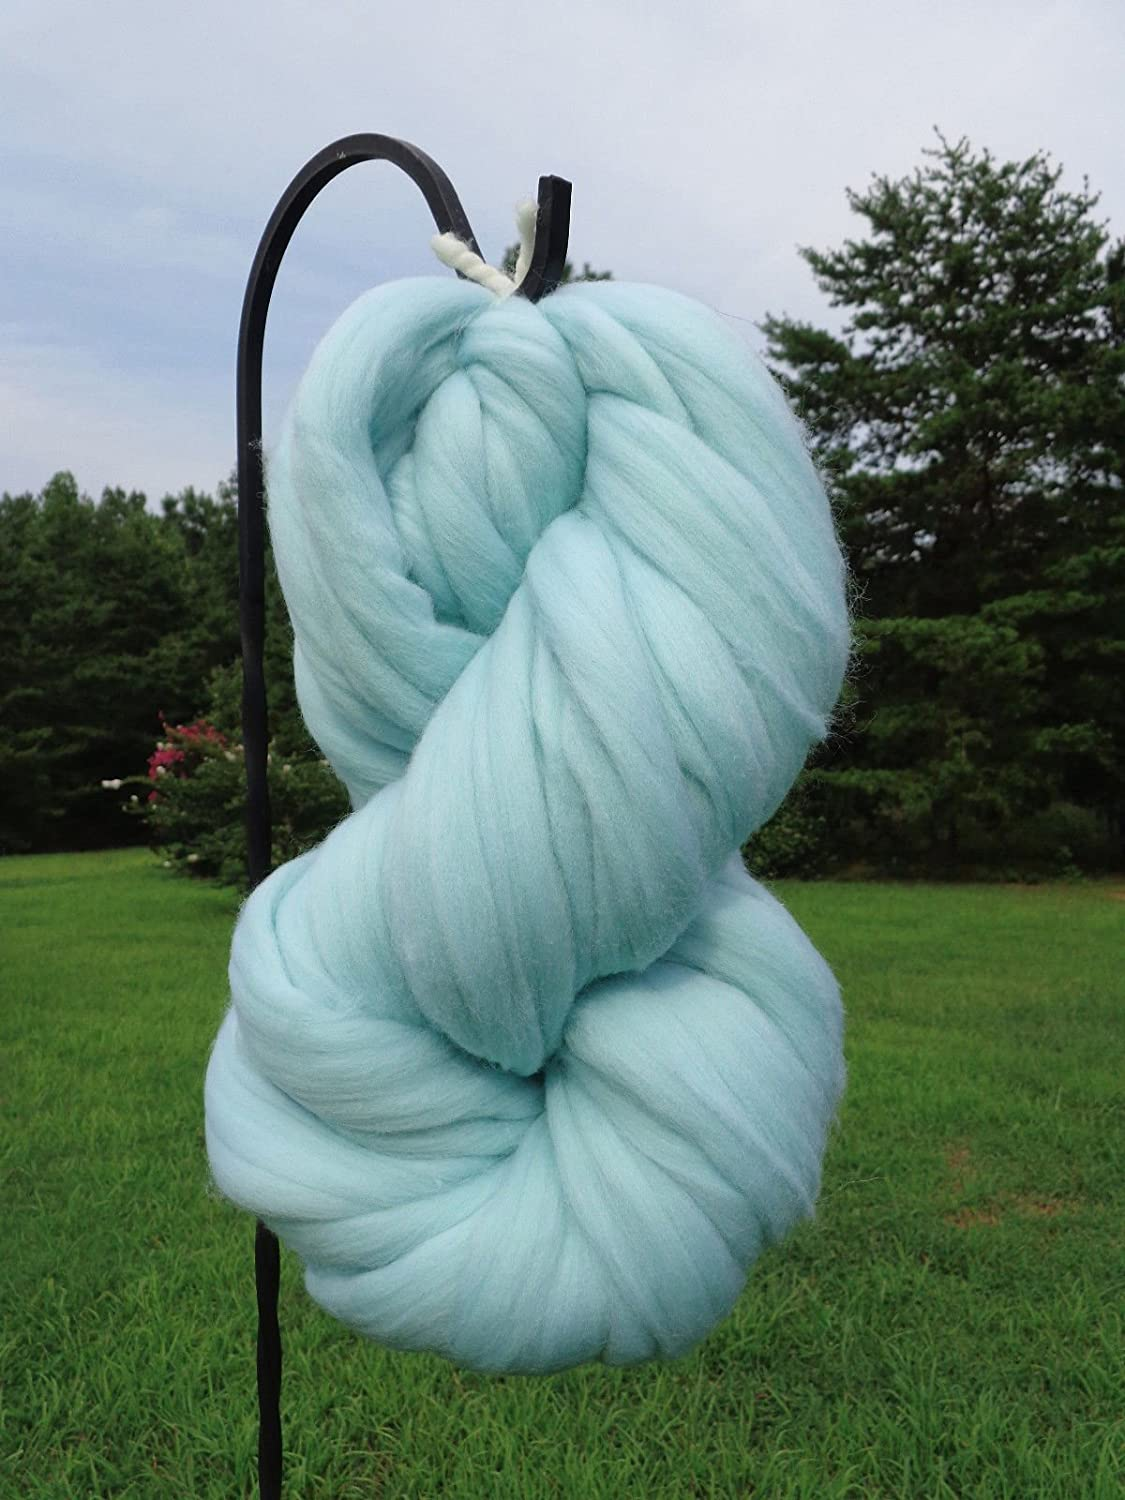 Frozen Blue Wool Top Roving Fiber Spinning, Felting Crafts USA (1oz) Shep' s Wool 4336907003